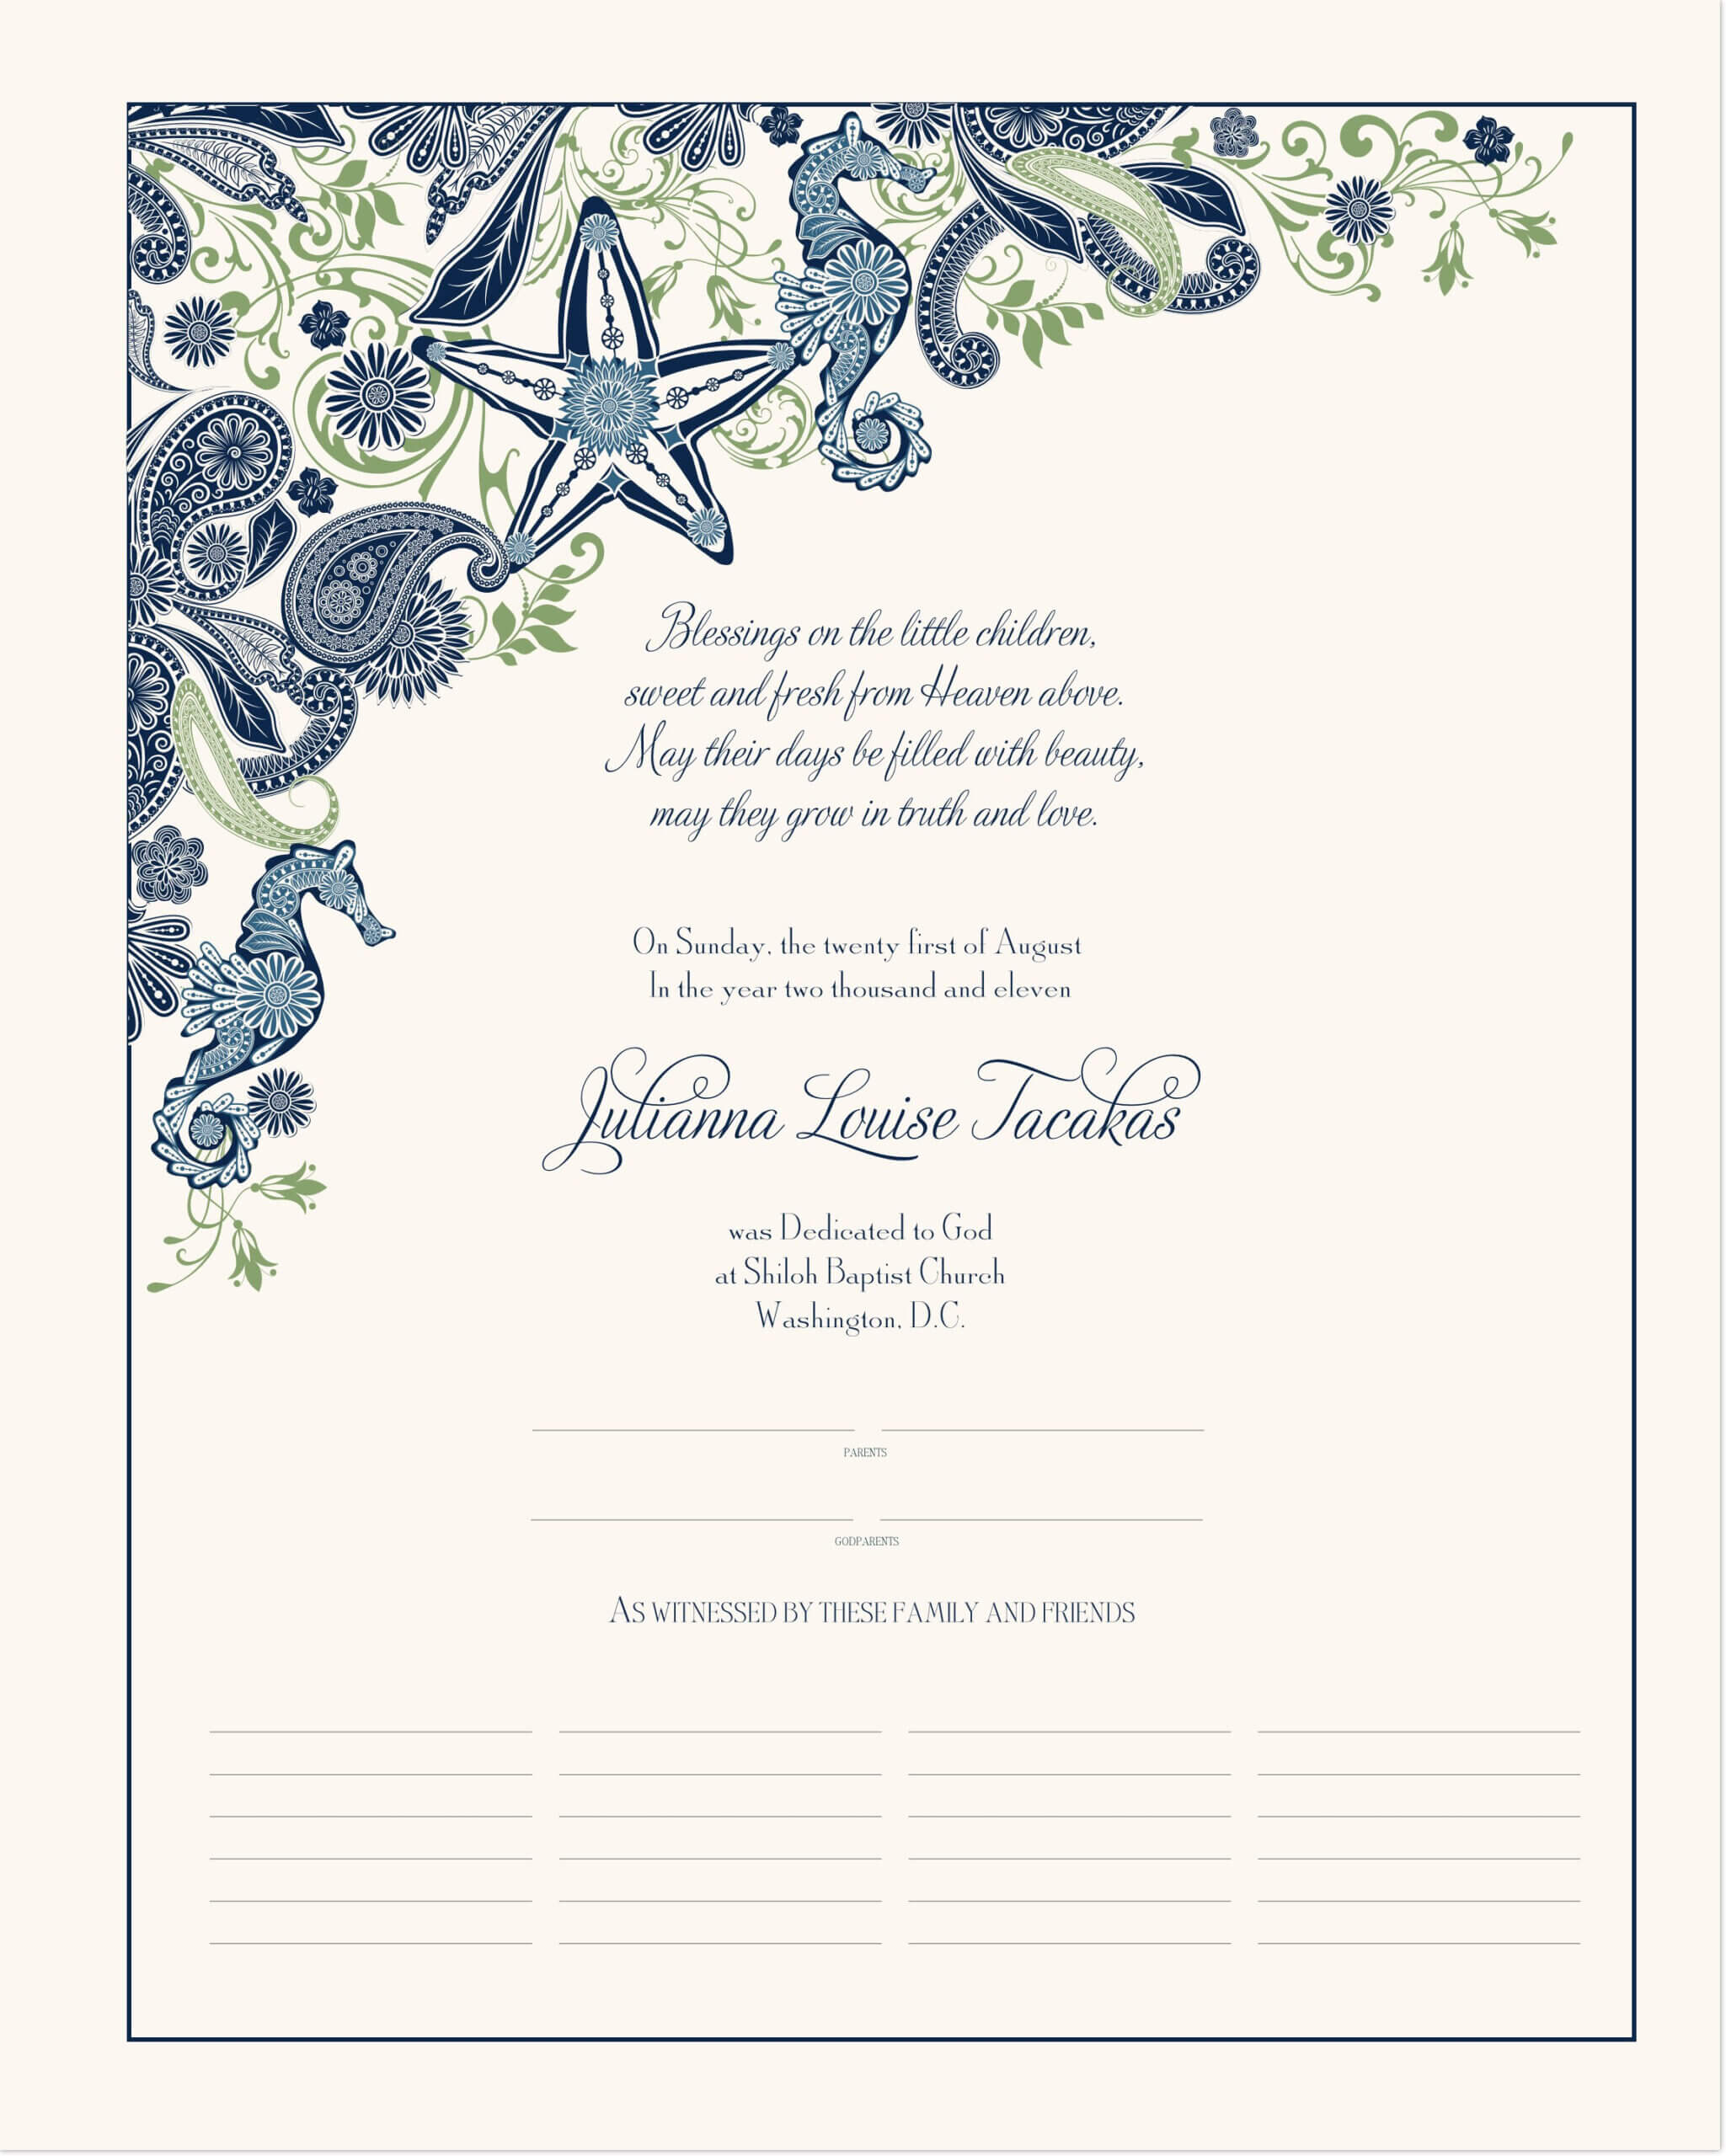 032 V Baby Dedication Certificate Template Free Archives As For Baby Dedication Certificate Template